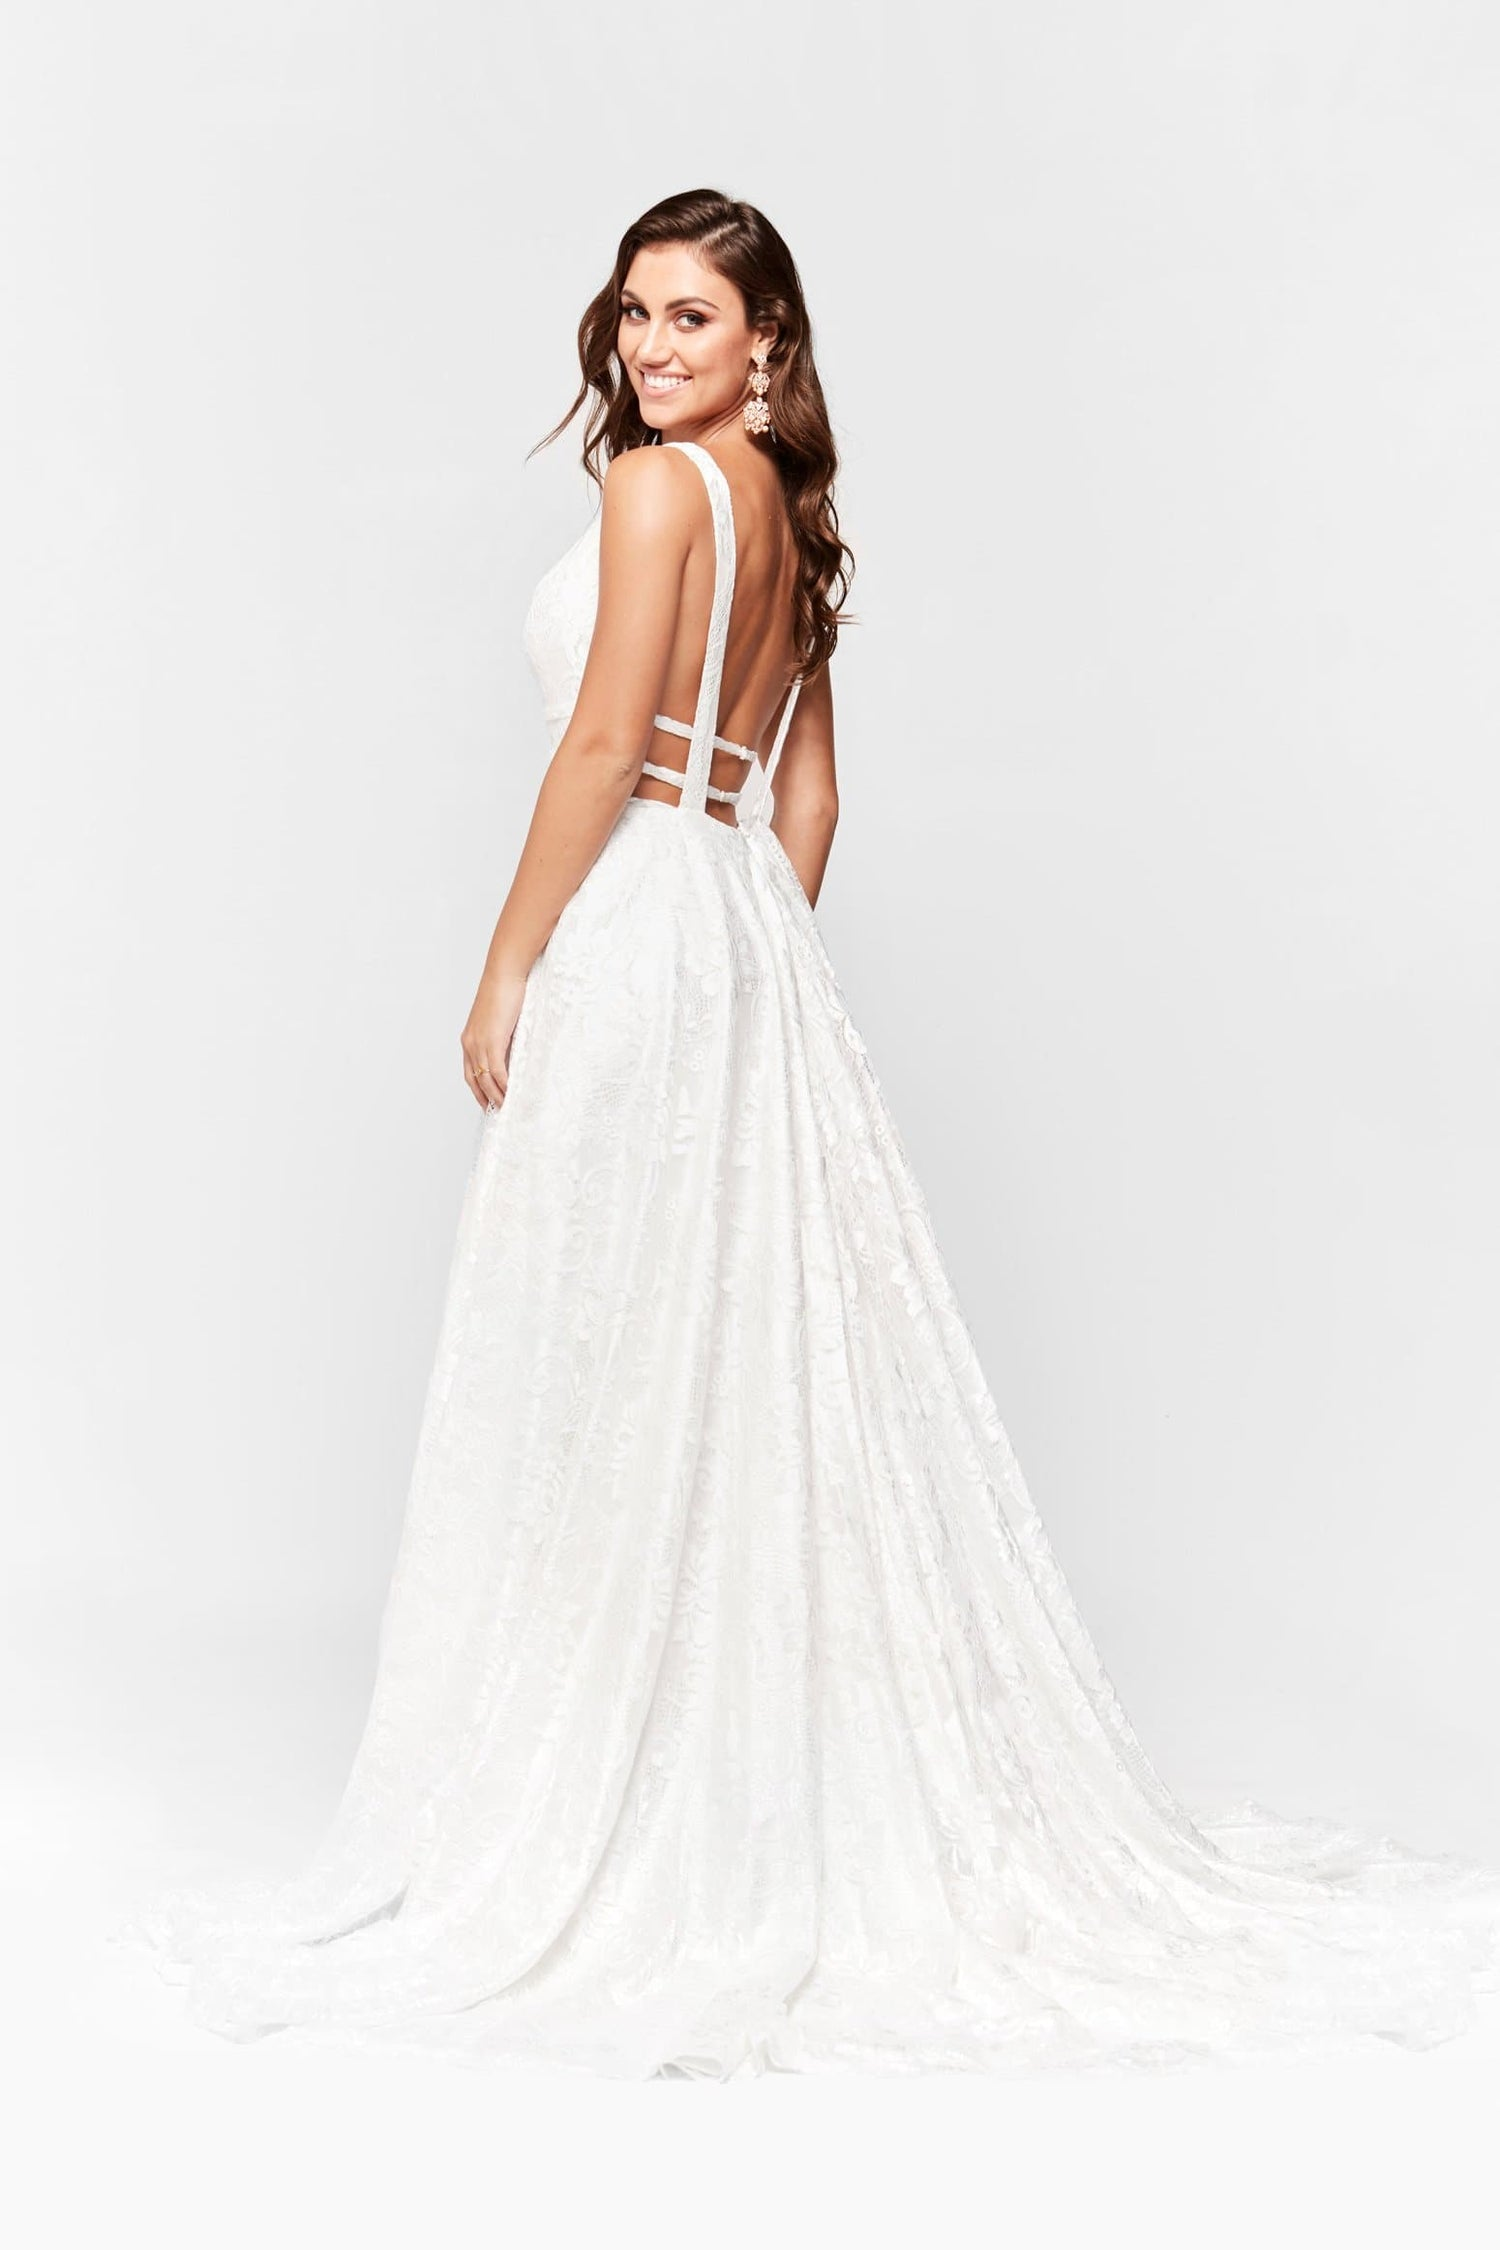 A&N Talia - White Lace Gown with Plunge V Neck and Low Back